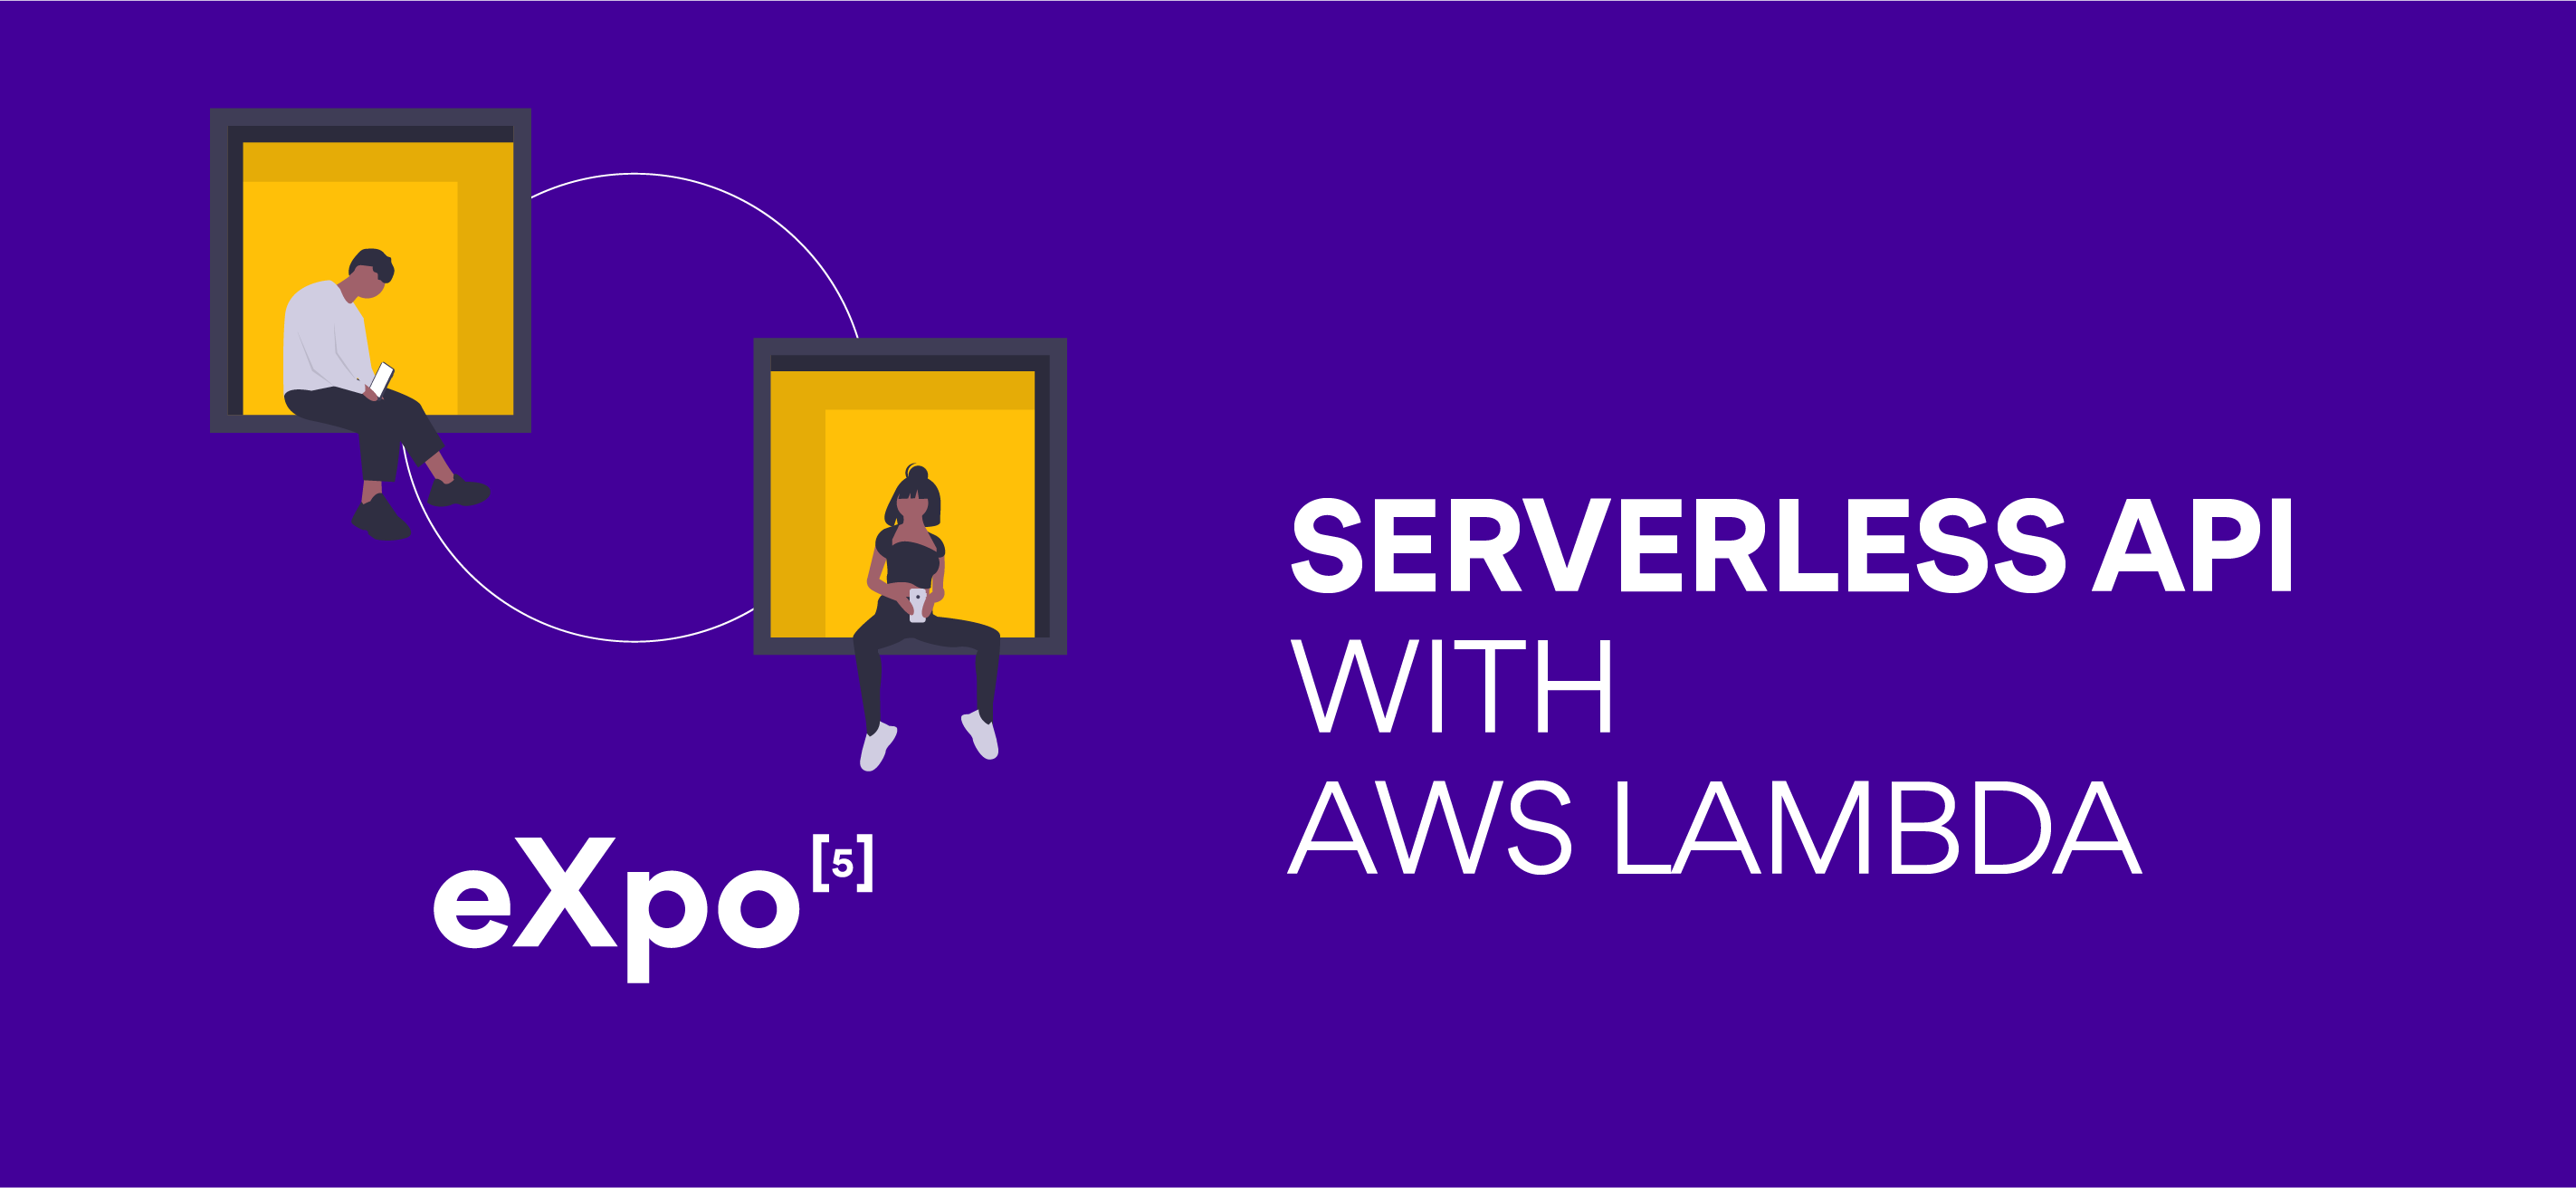 Serverless API with AWS Lambda